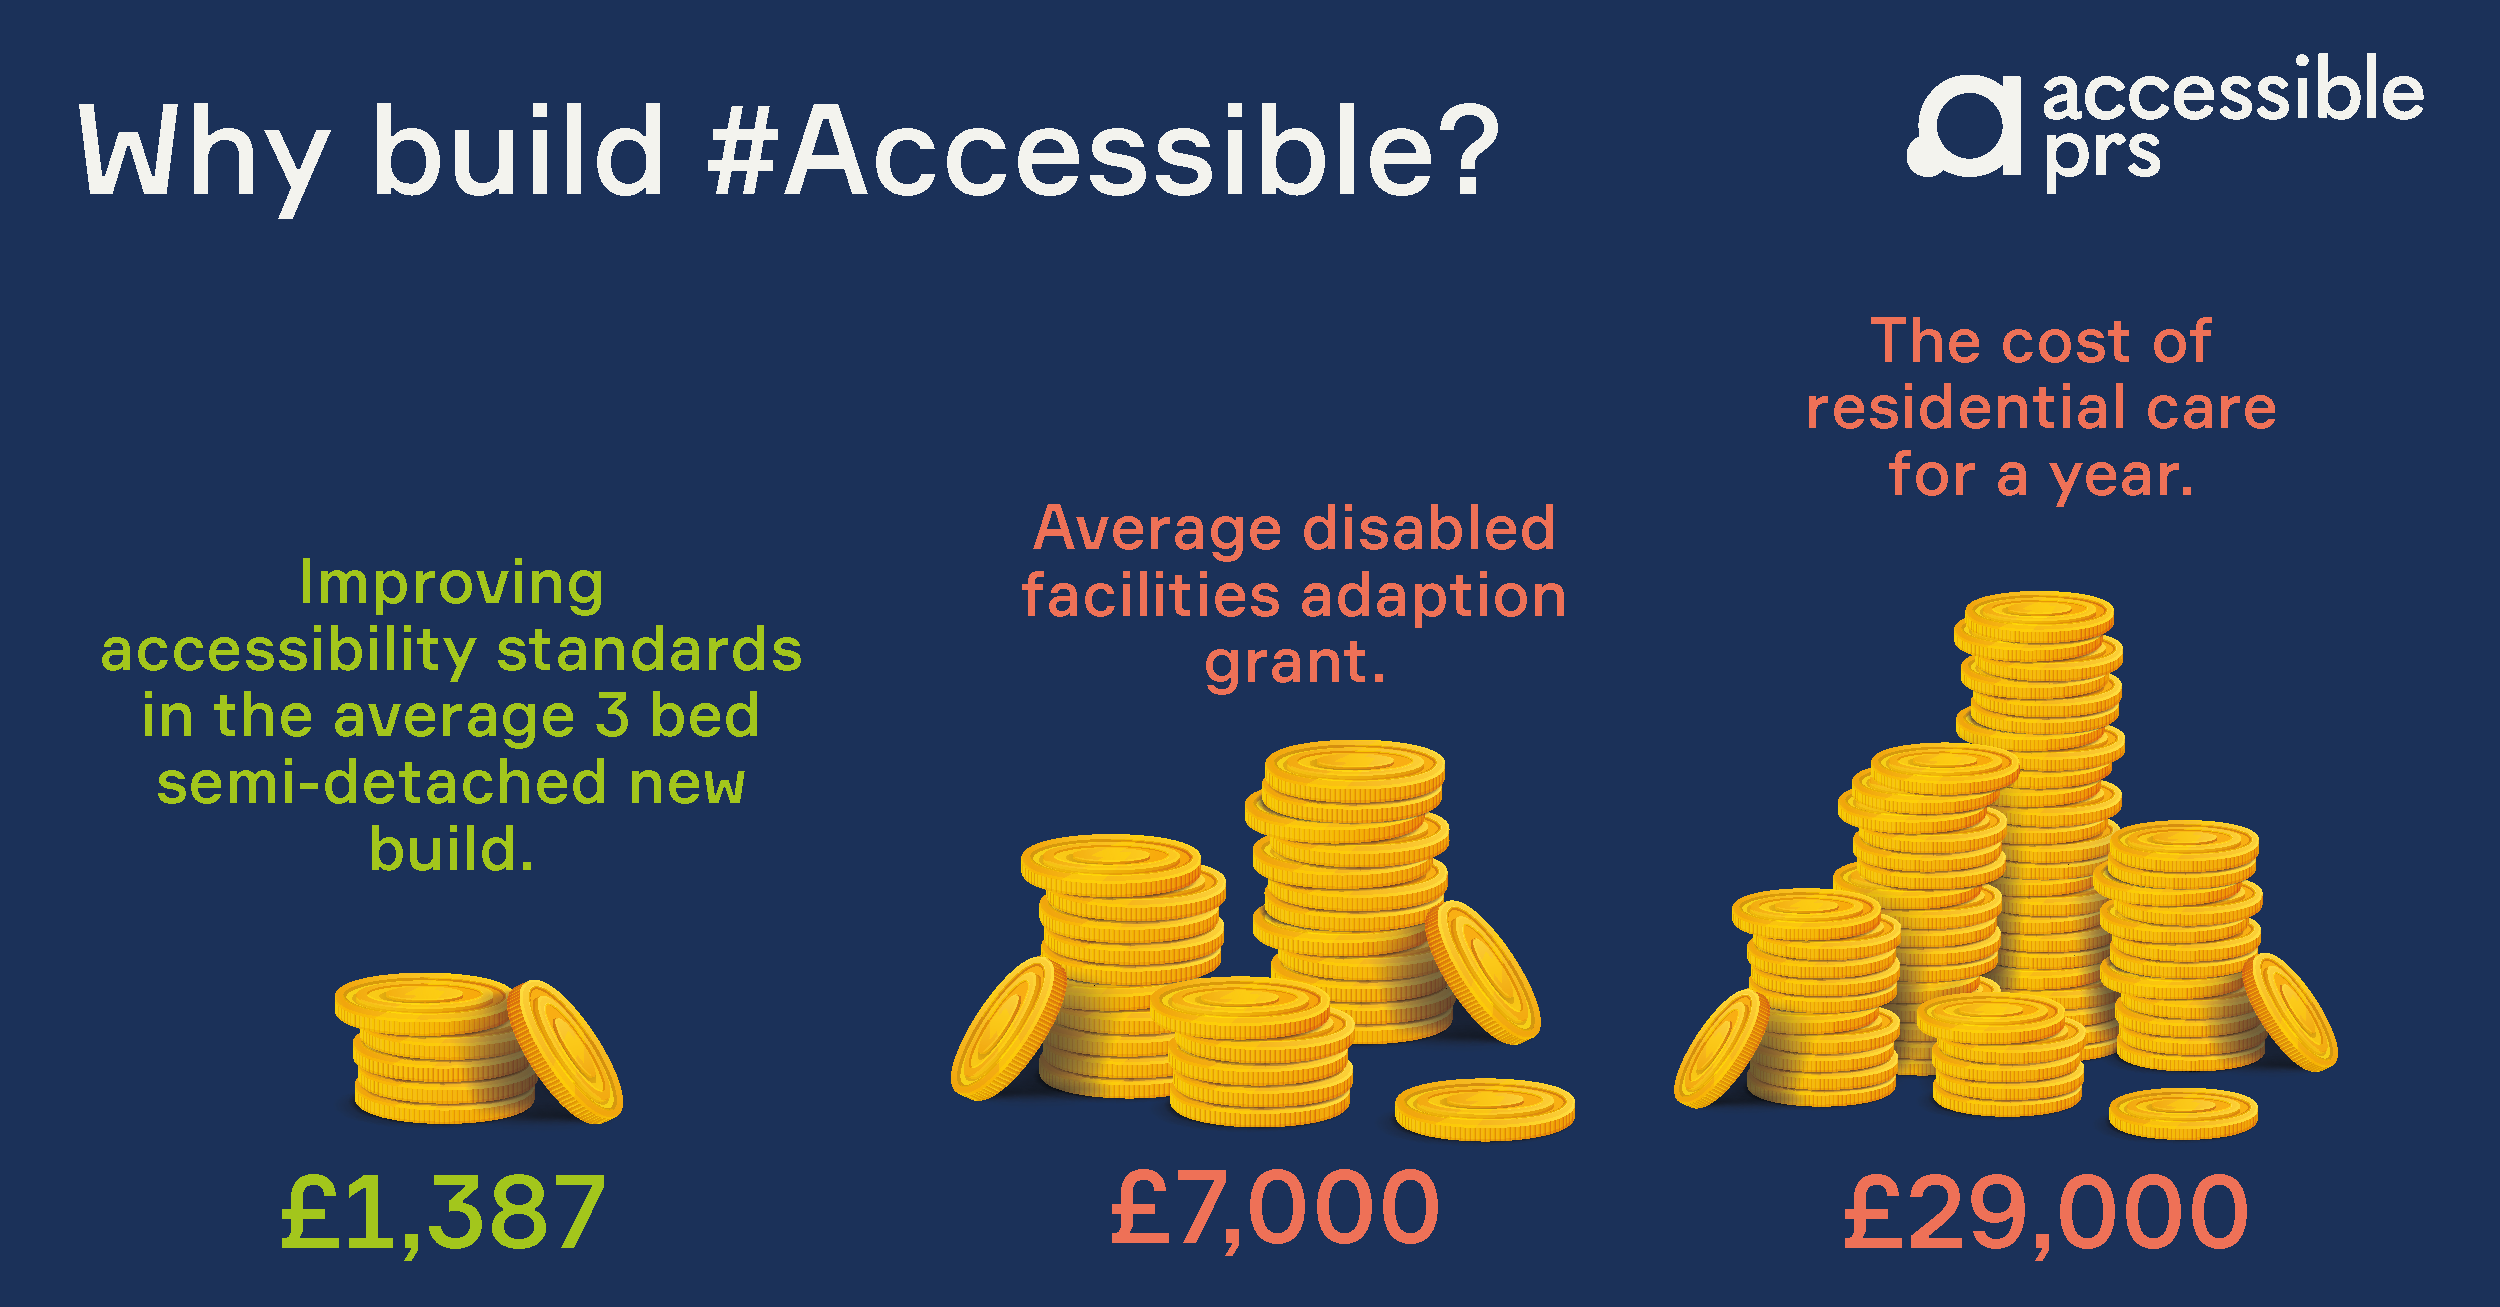 Why build accessible infographic